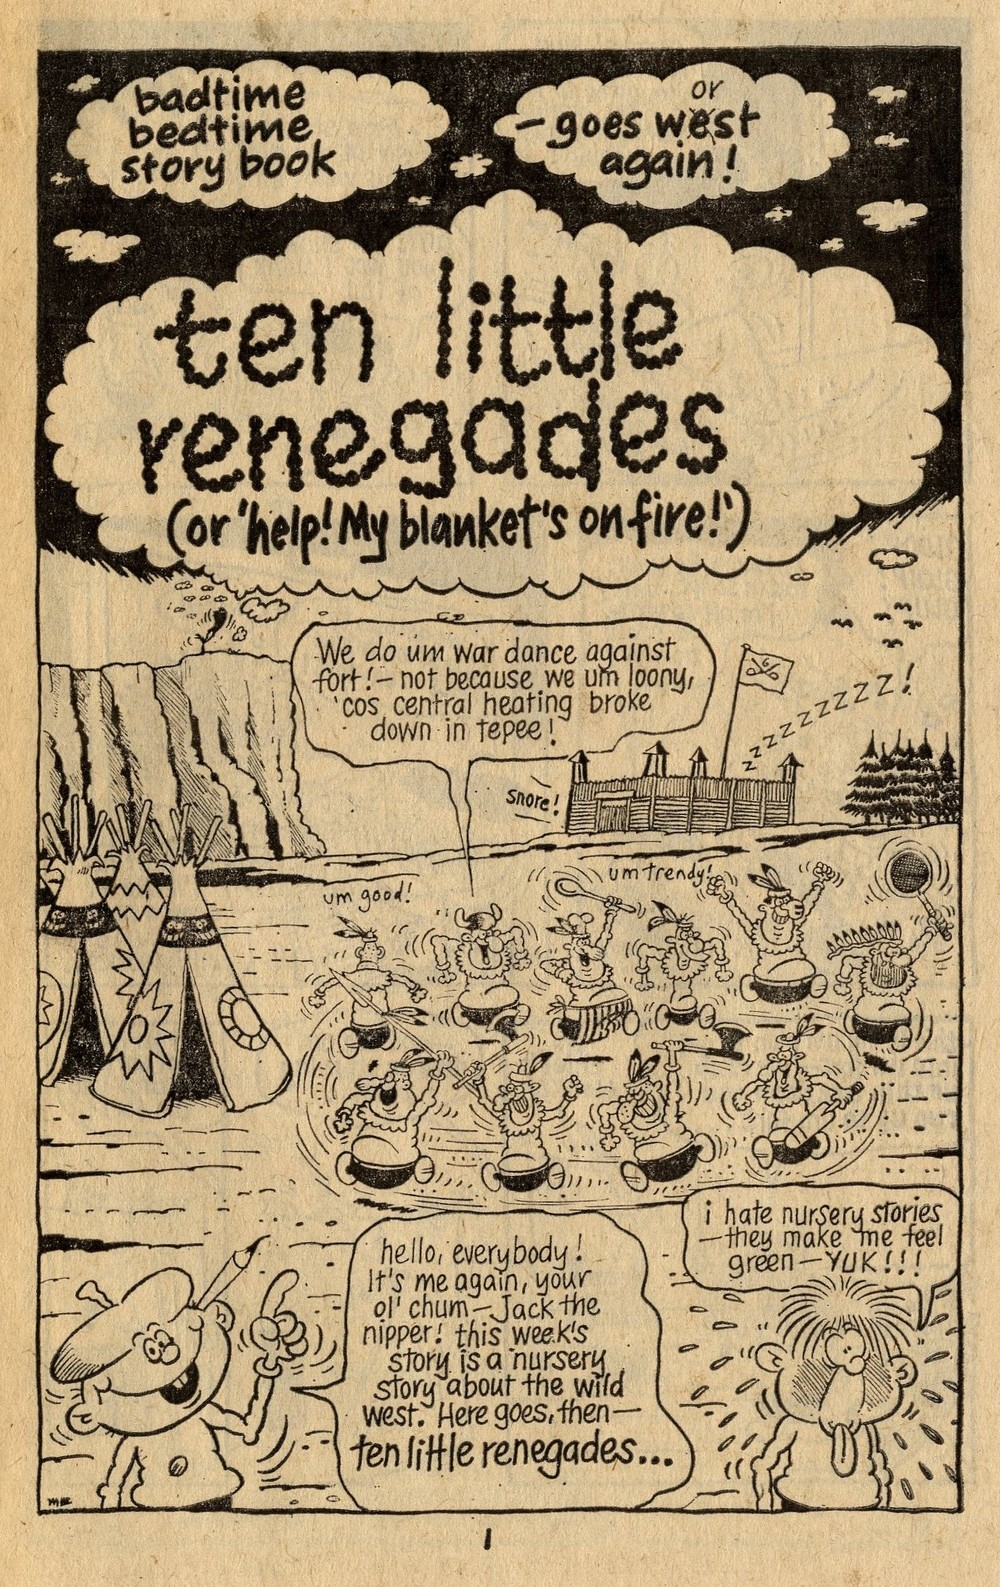 Badtime Bedtime Storybook: Ten Little Renegades: Mike Brown (artist)